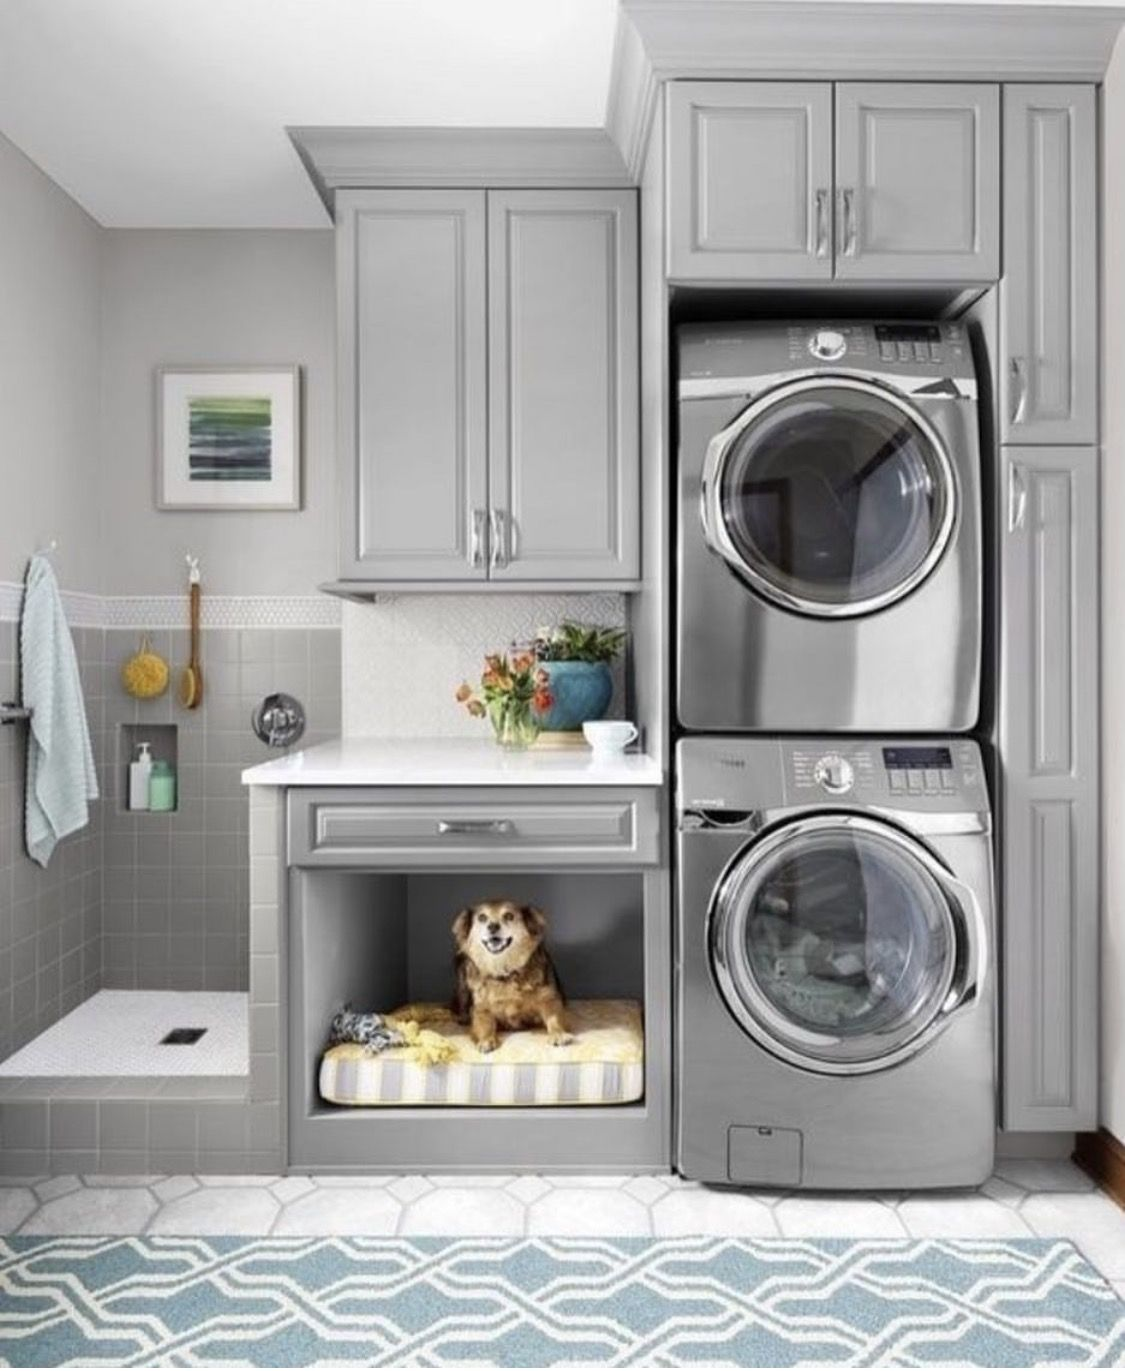 Pin de donna cruz en laundry rooms pinterest lavaderos for Lavaderos ideas